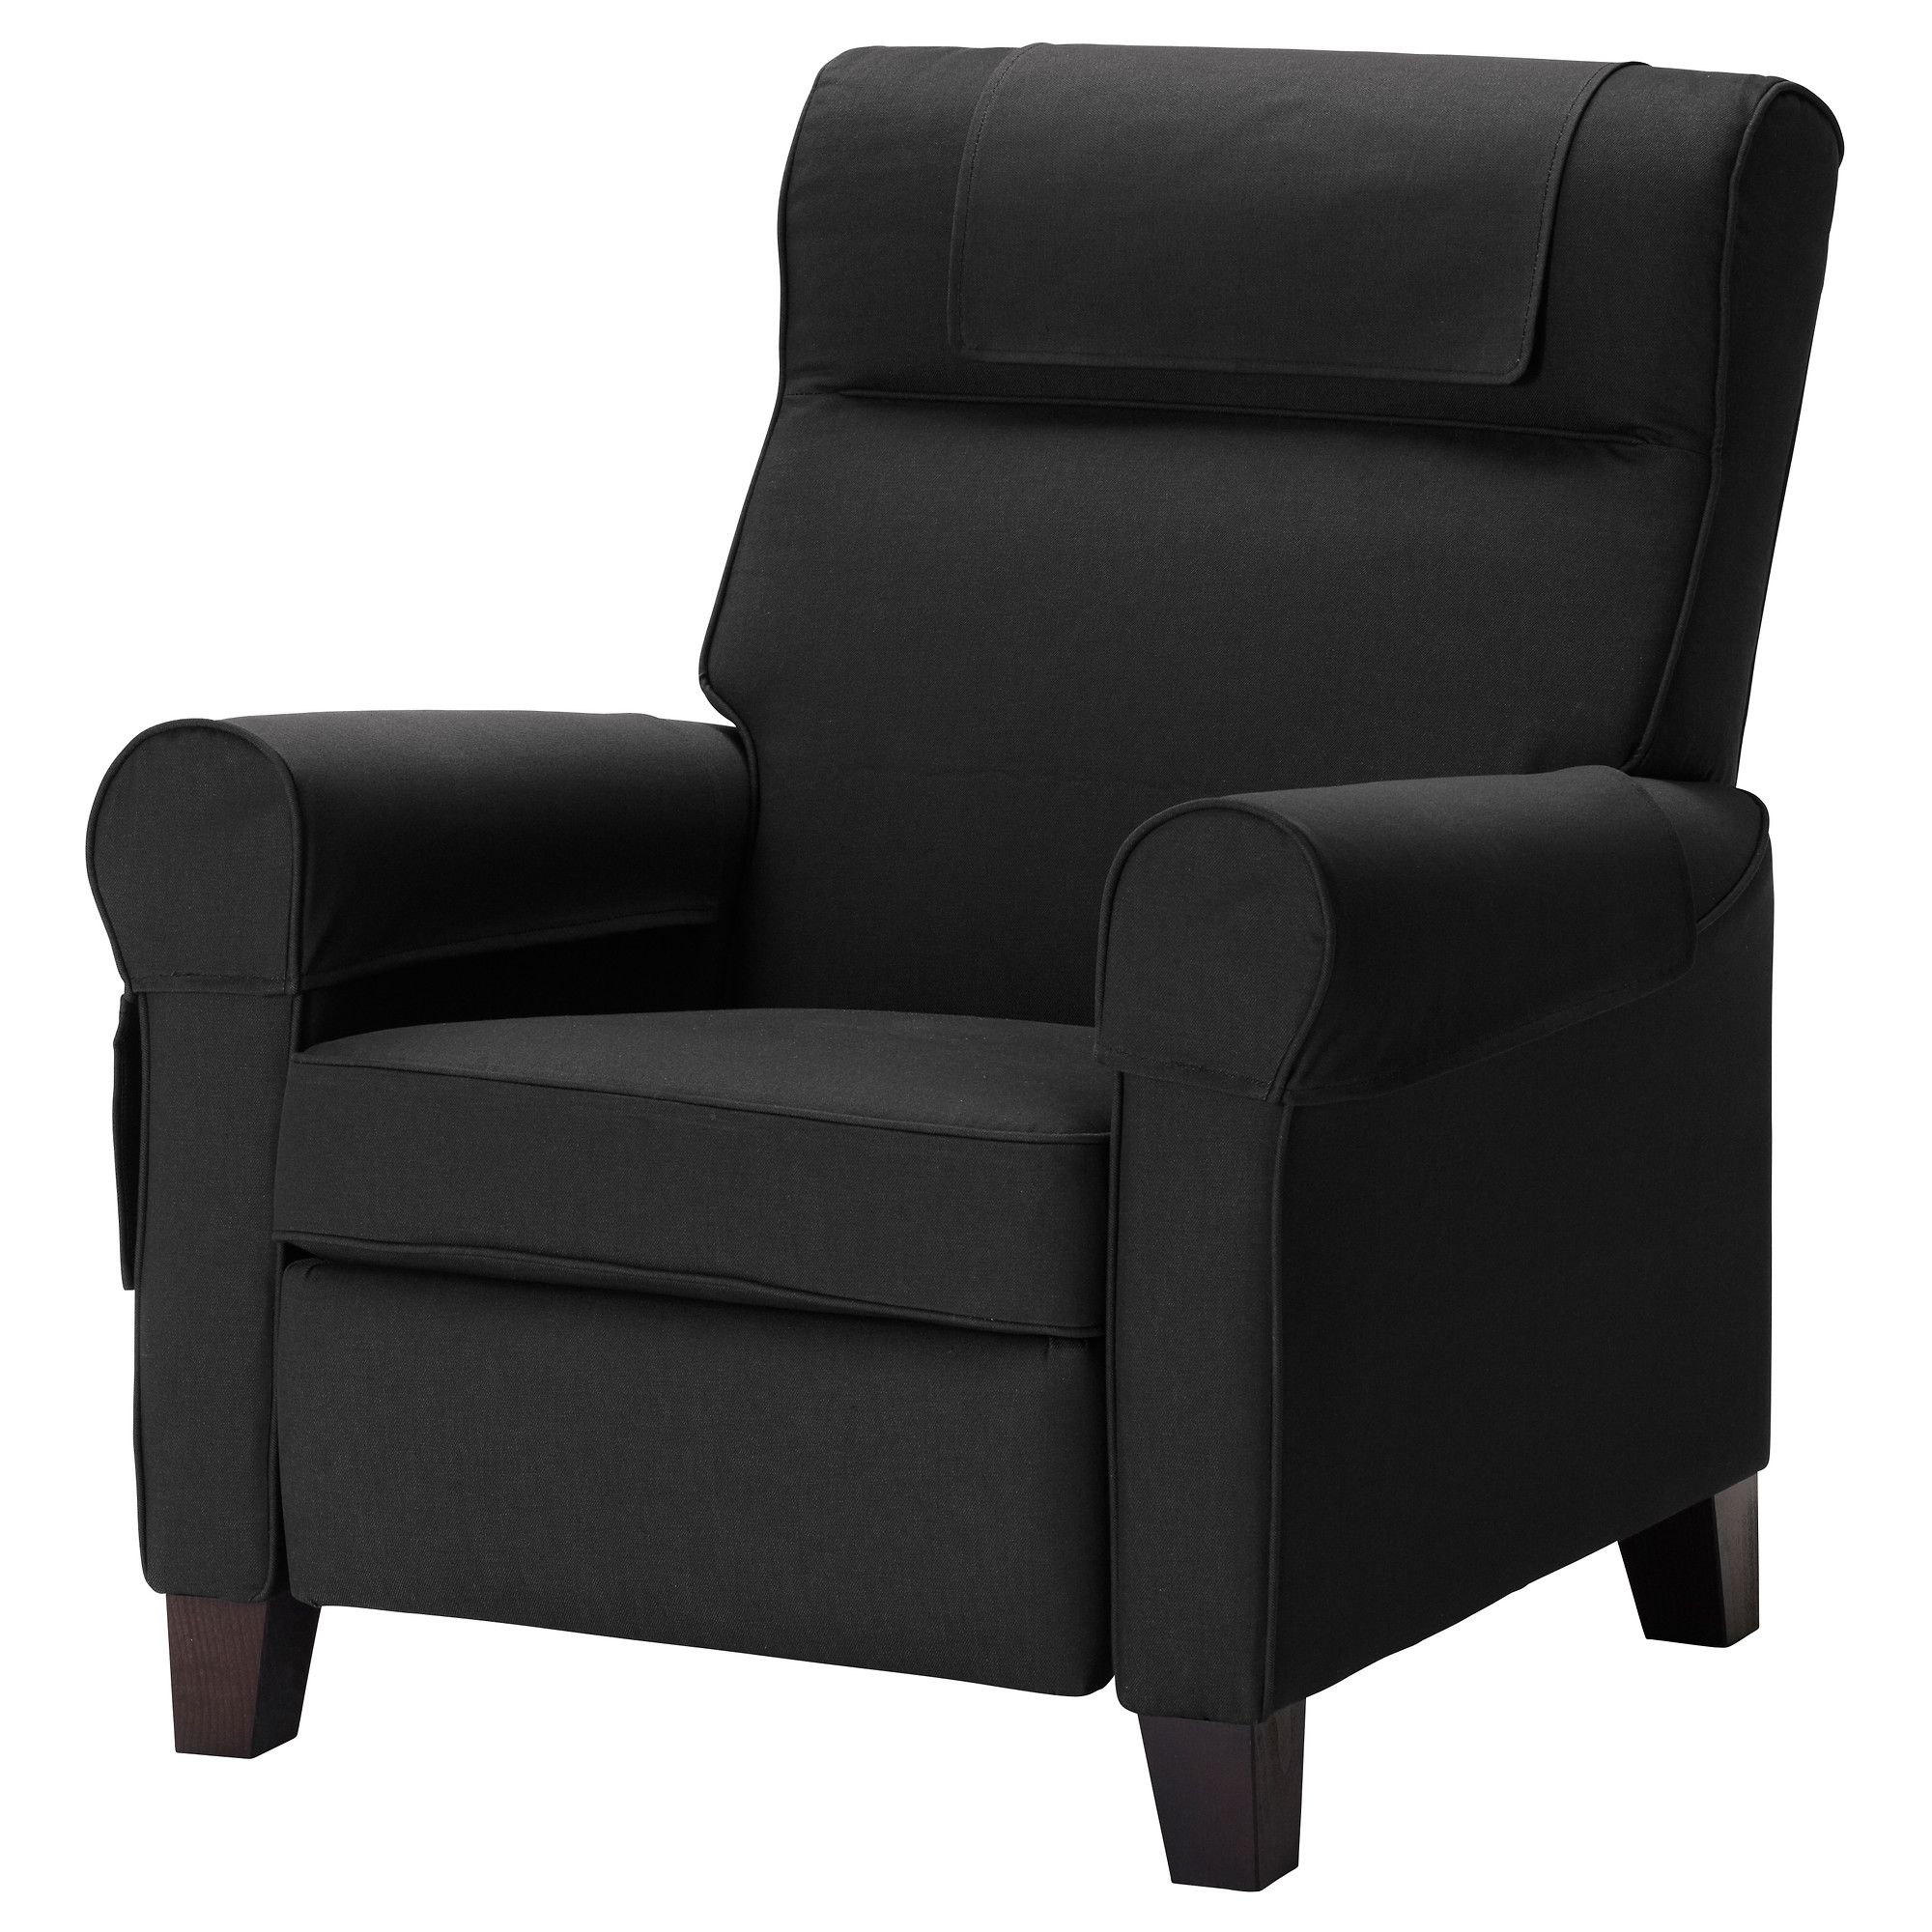 canada small replacement cushion with armchair cover chair dubai armchairs of ikea recliner bunch for ideas chairs leather